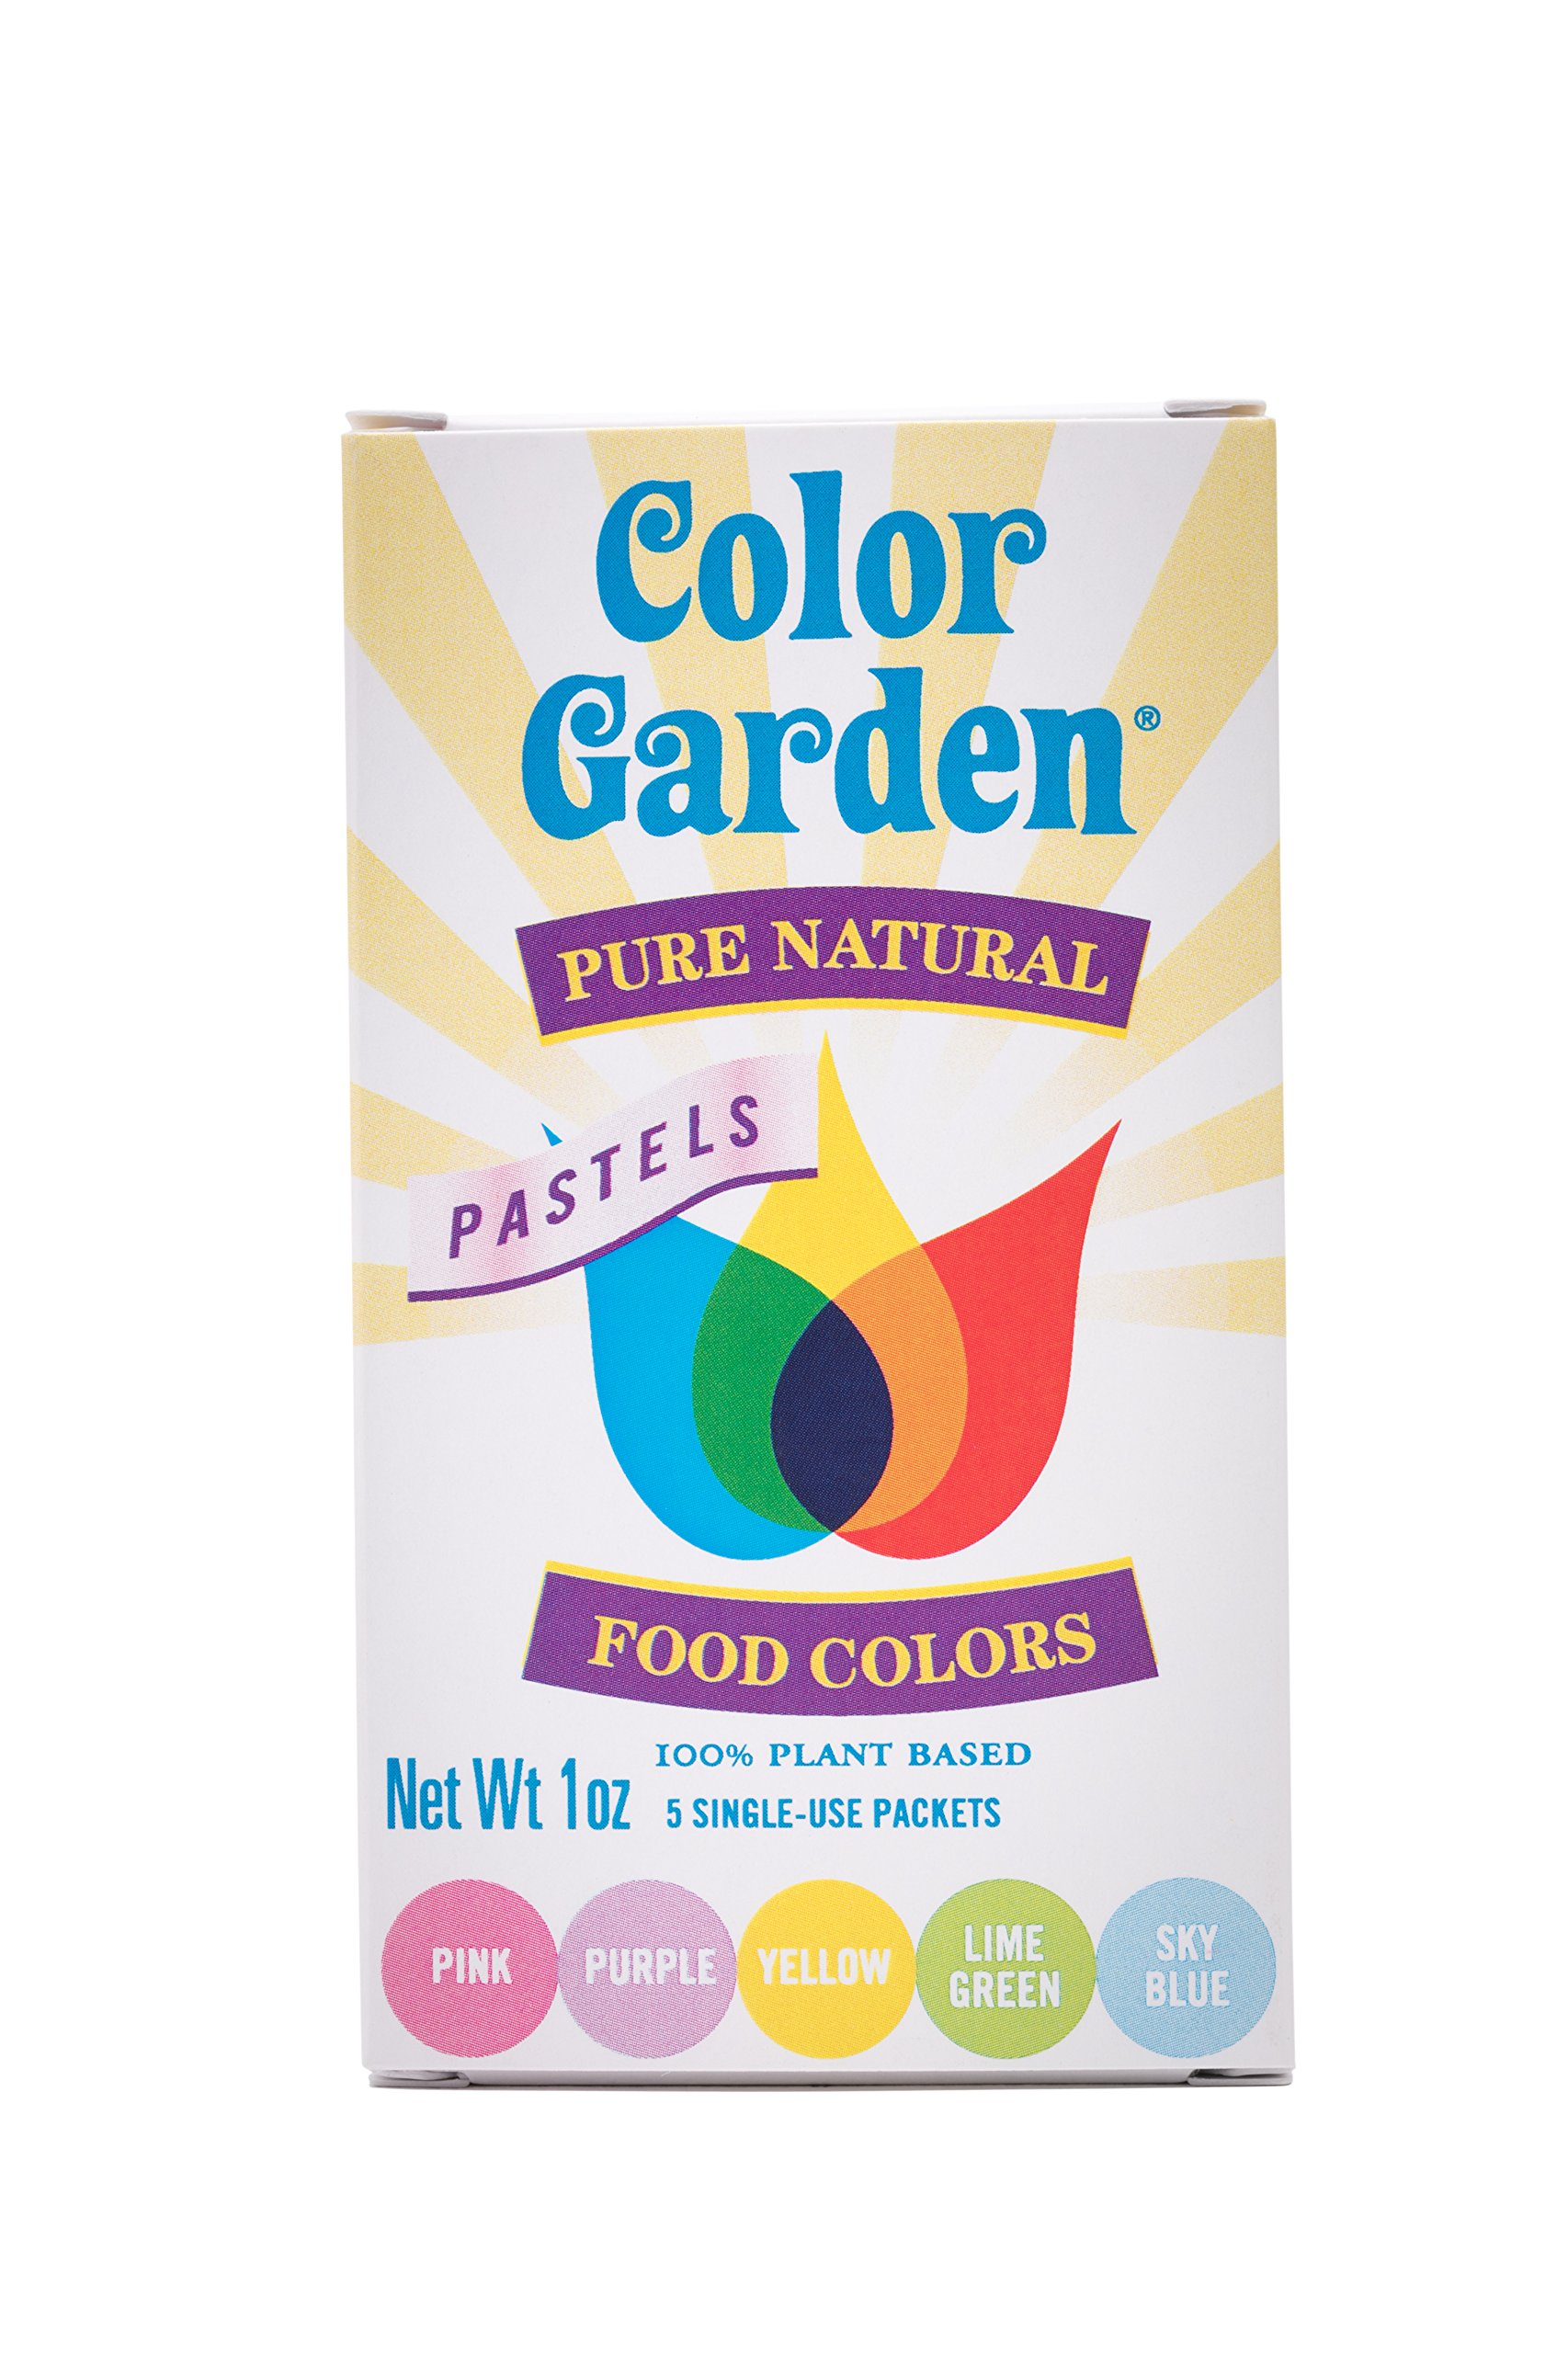 Color Garden Pure Natural Food Colors PASTELS Pack 5 ct